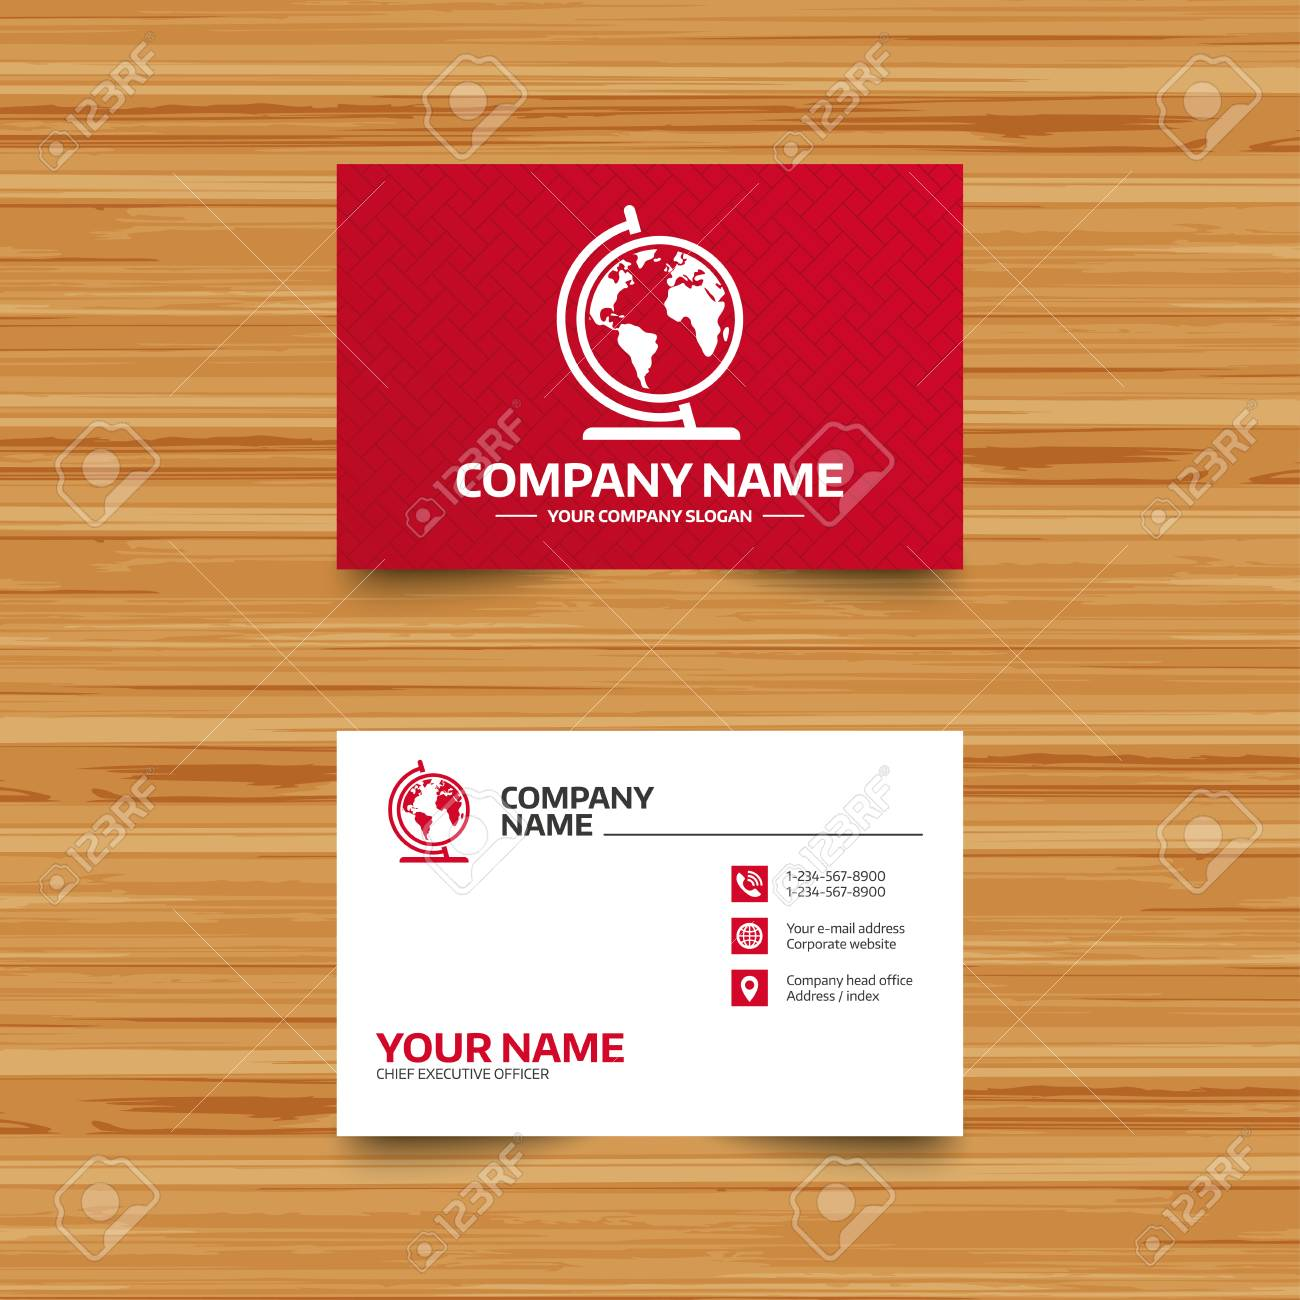 Business card template globe sign icon world map geography business card template globe sign icon world map geography symbol globe on stand colourmoves